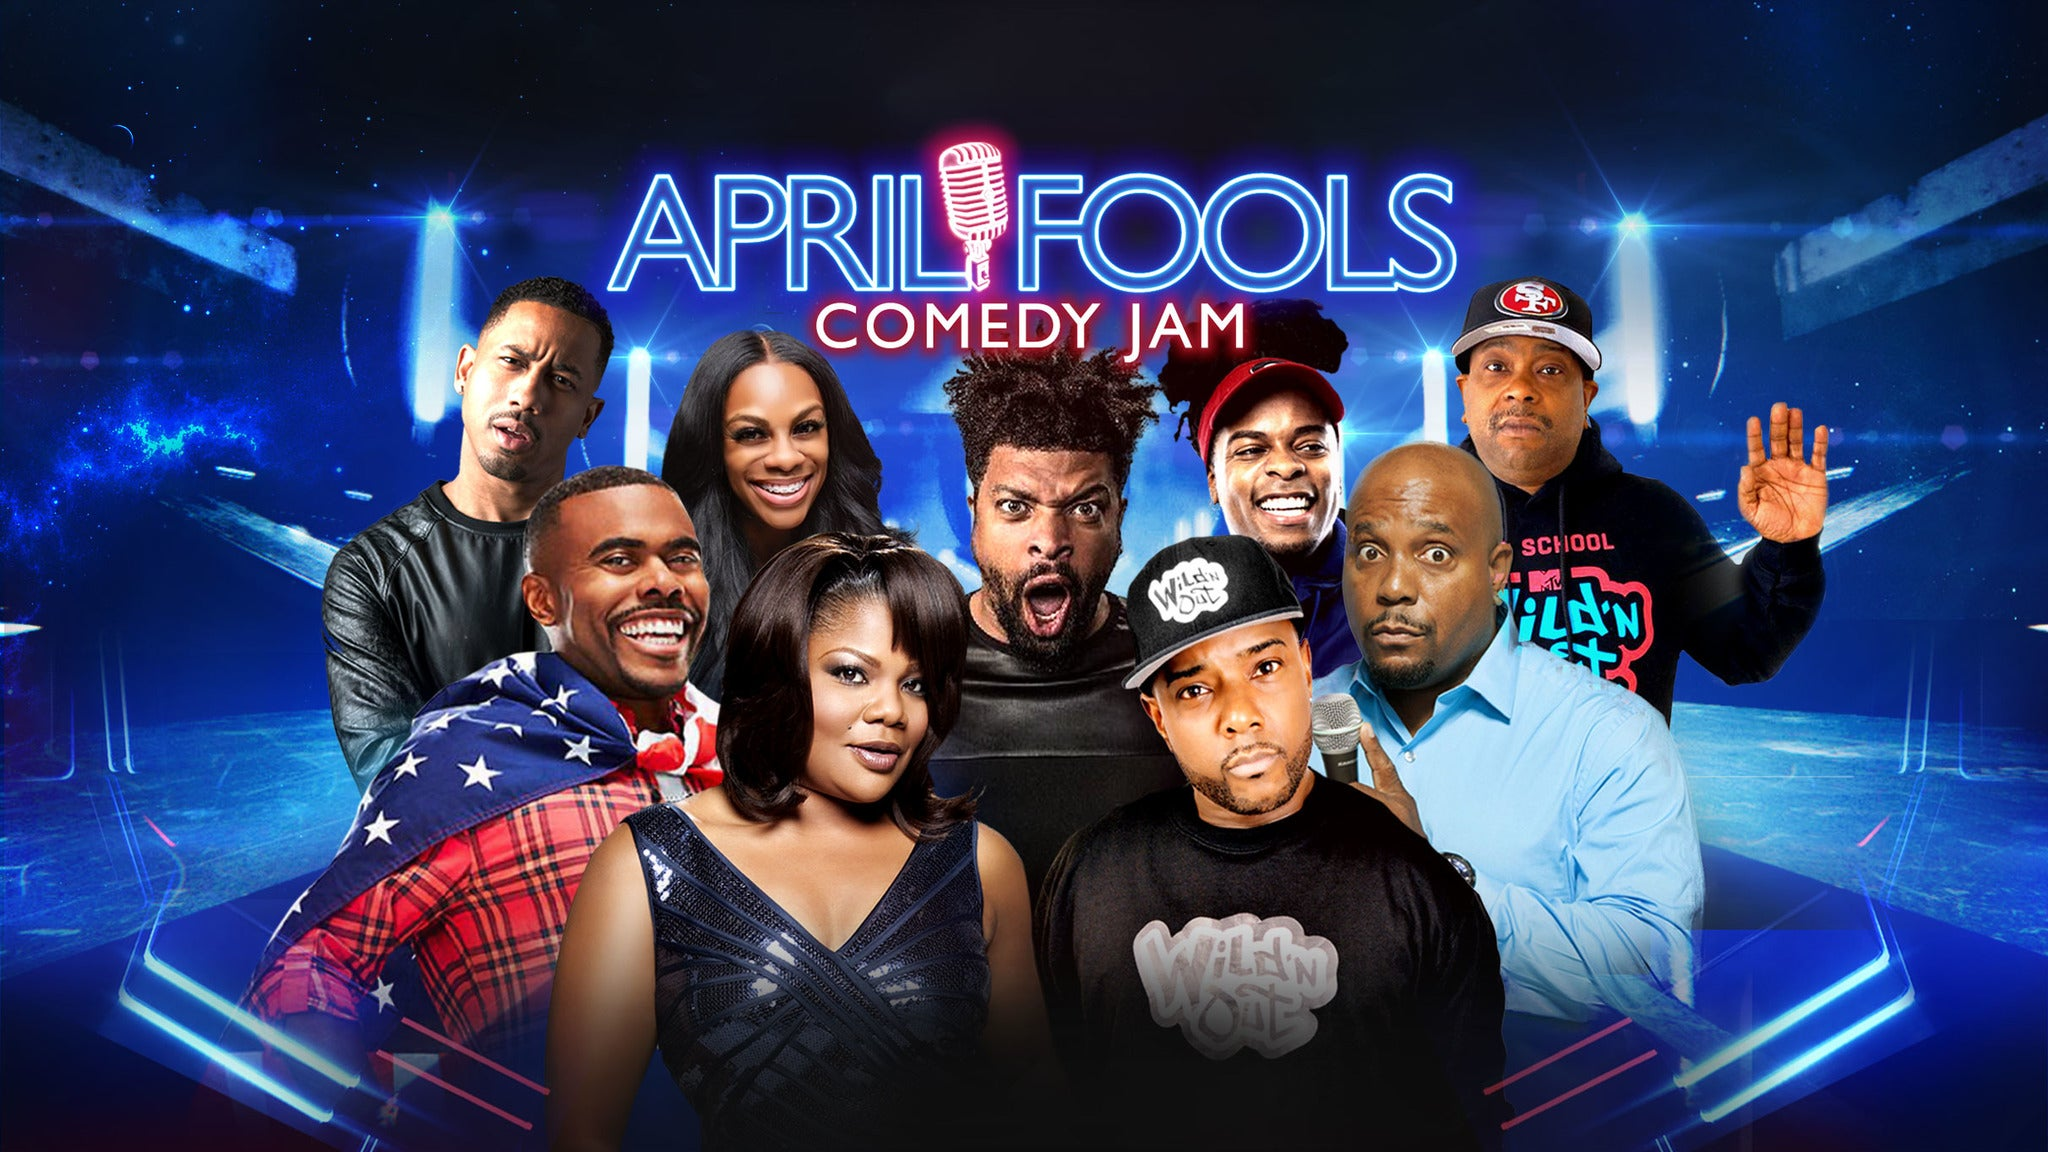 April Fools Comedy Jam Brooklyn at Barclays Center